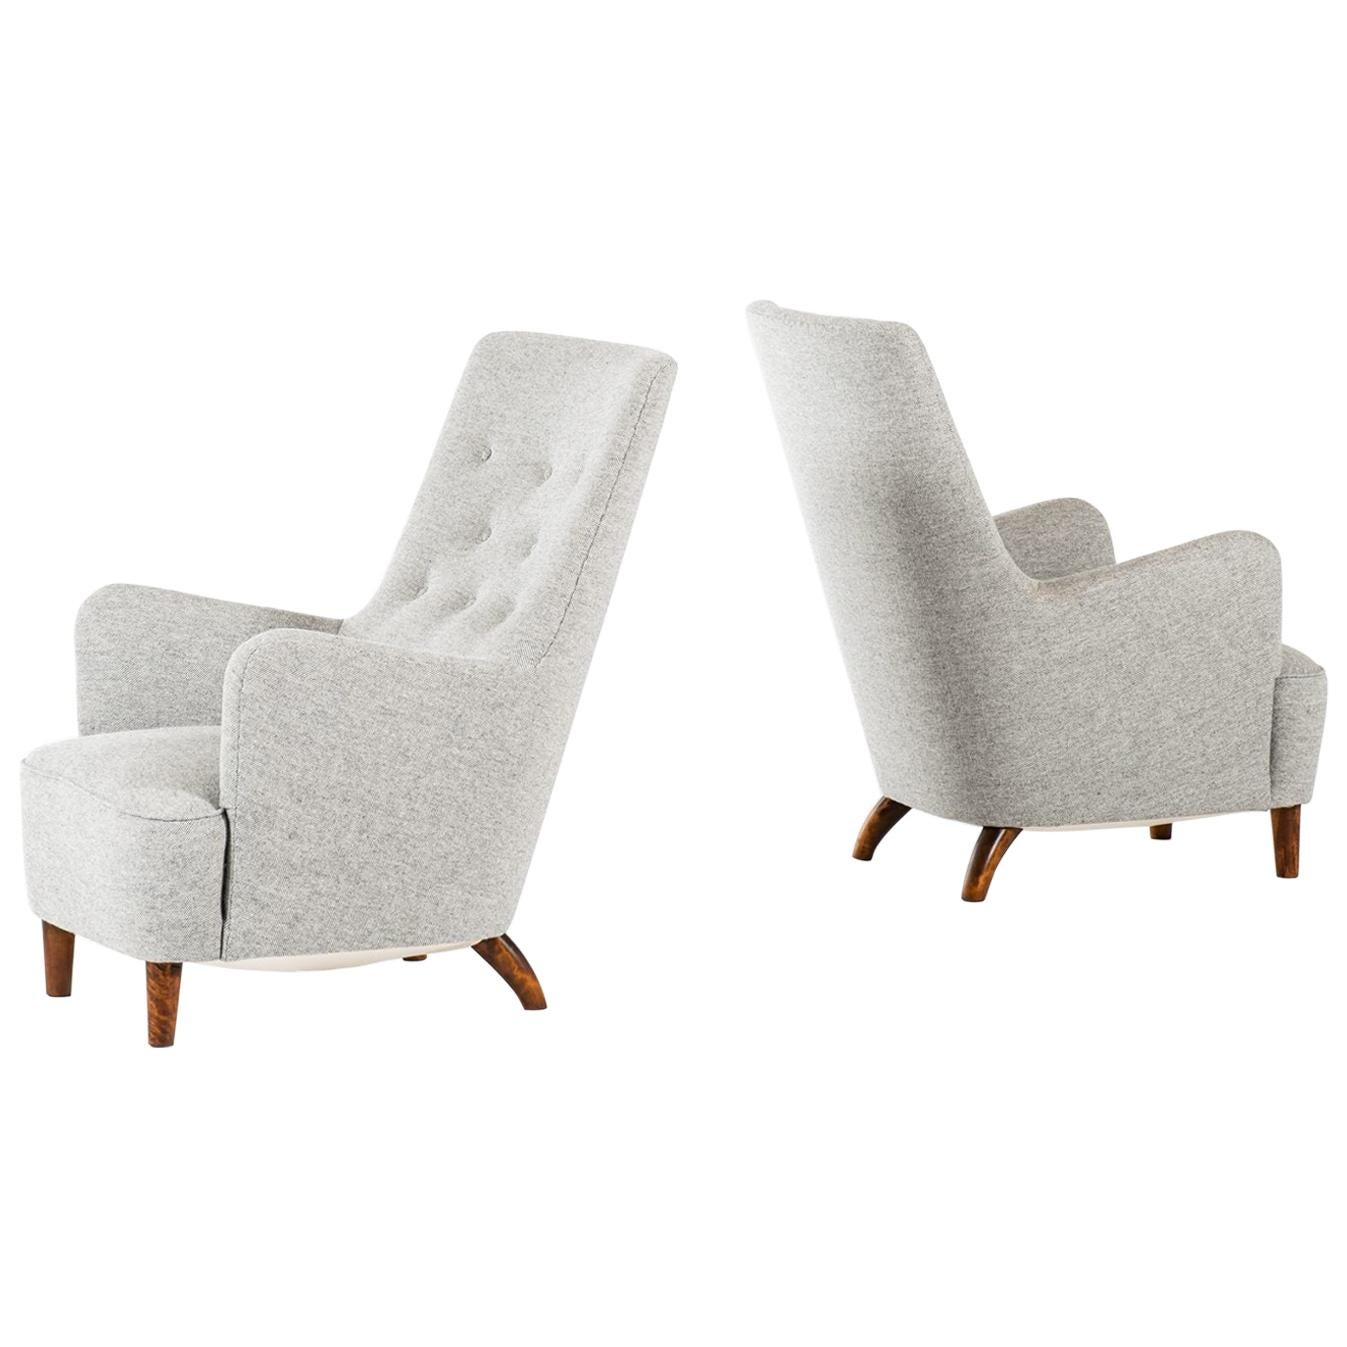 Carl-Axel Acking Easy Chairs Produced in Sweden